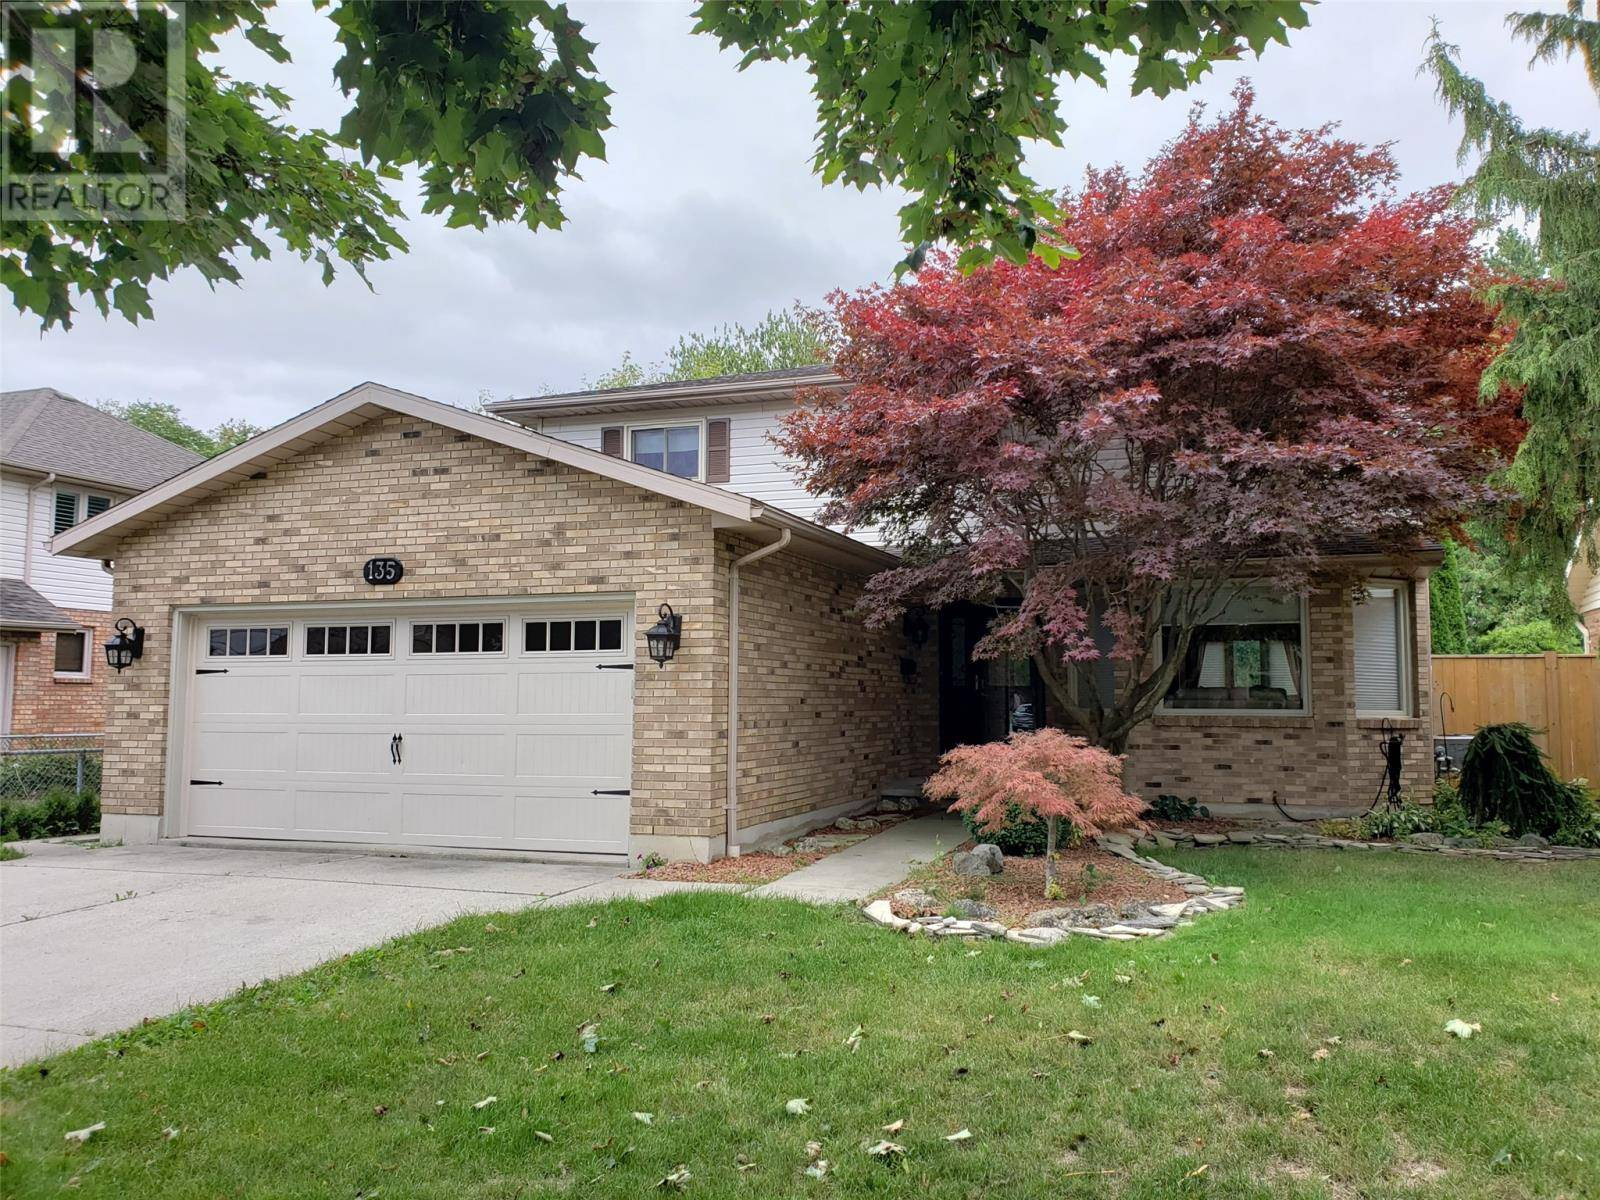 House for sale at 135 Norway Maple Dr Chatham Ontario - MLS: 19026536